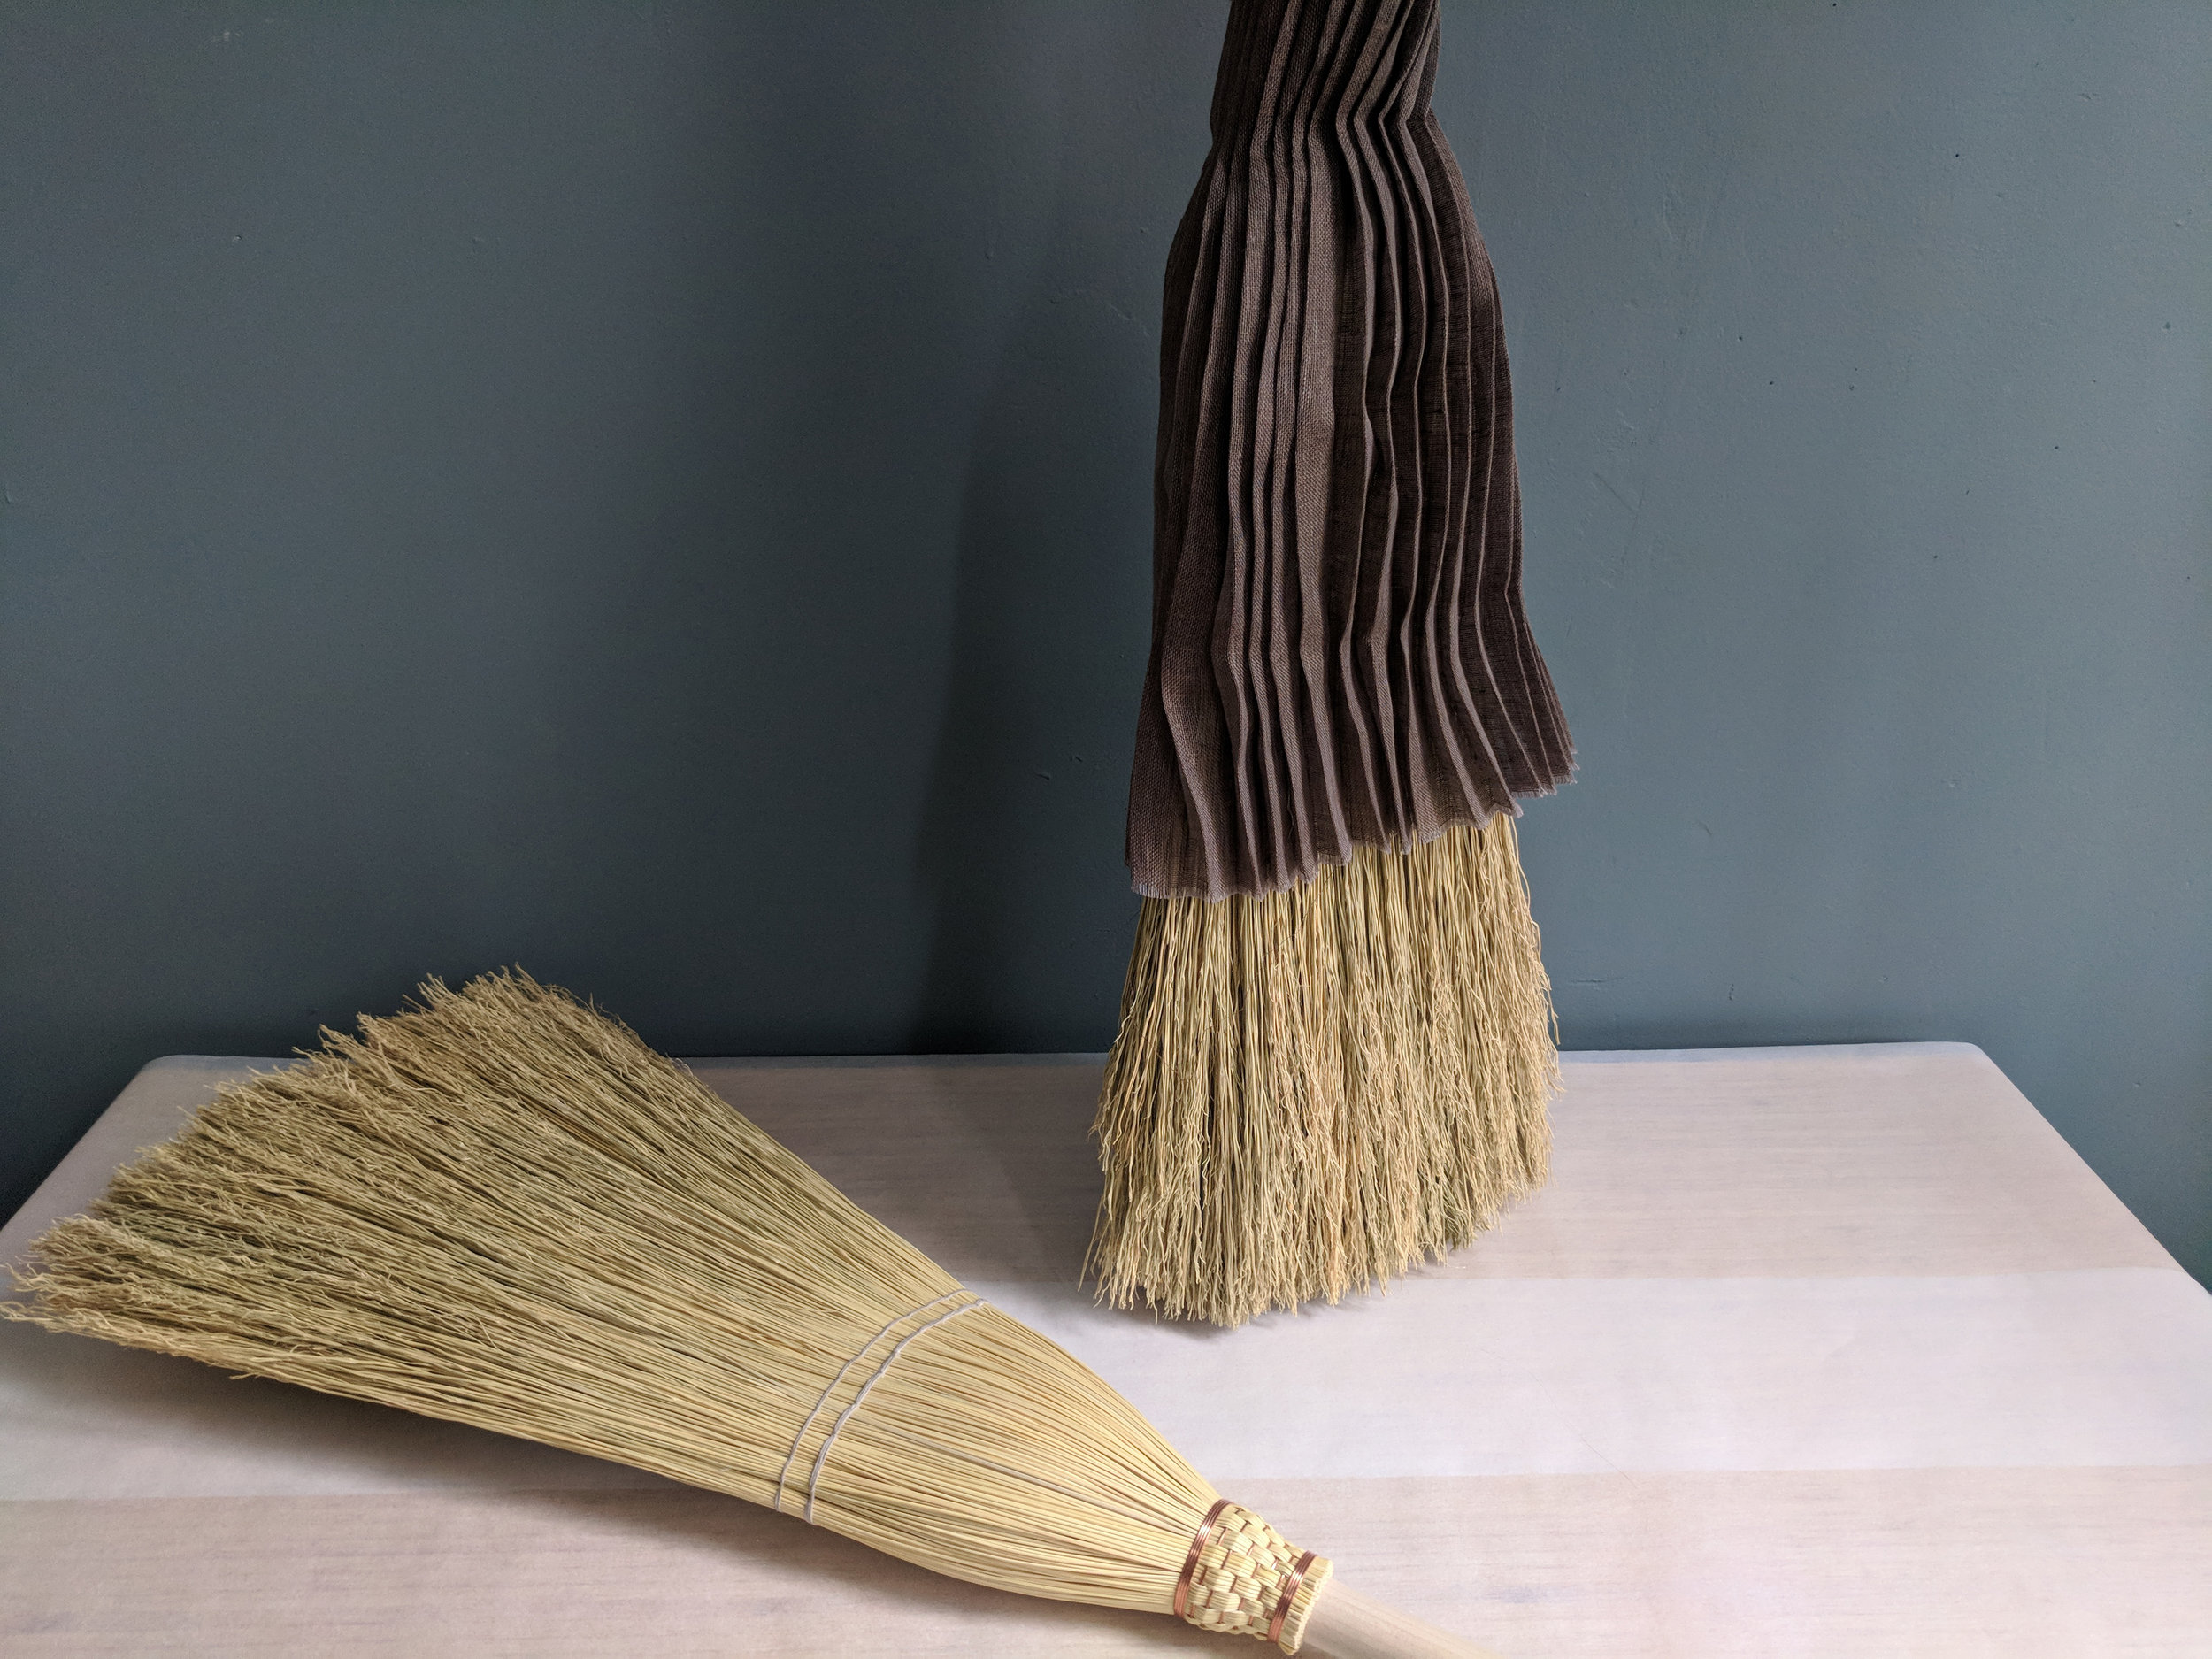 custodian_brooms_linen cover_detail.jpg